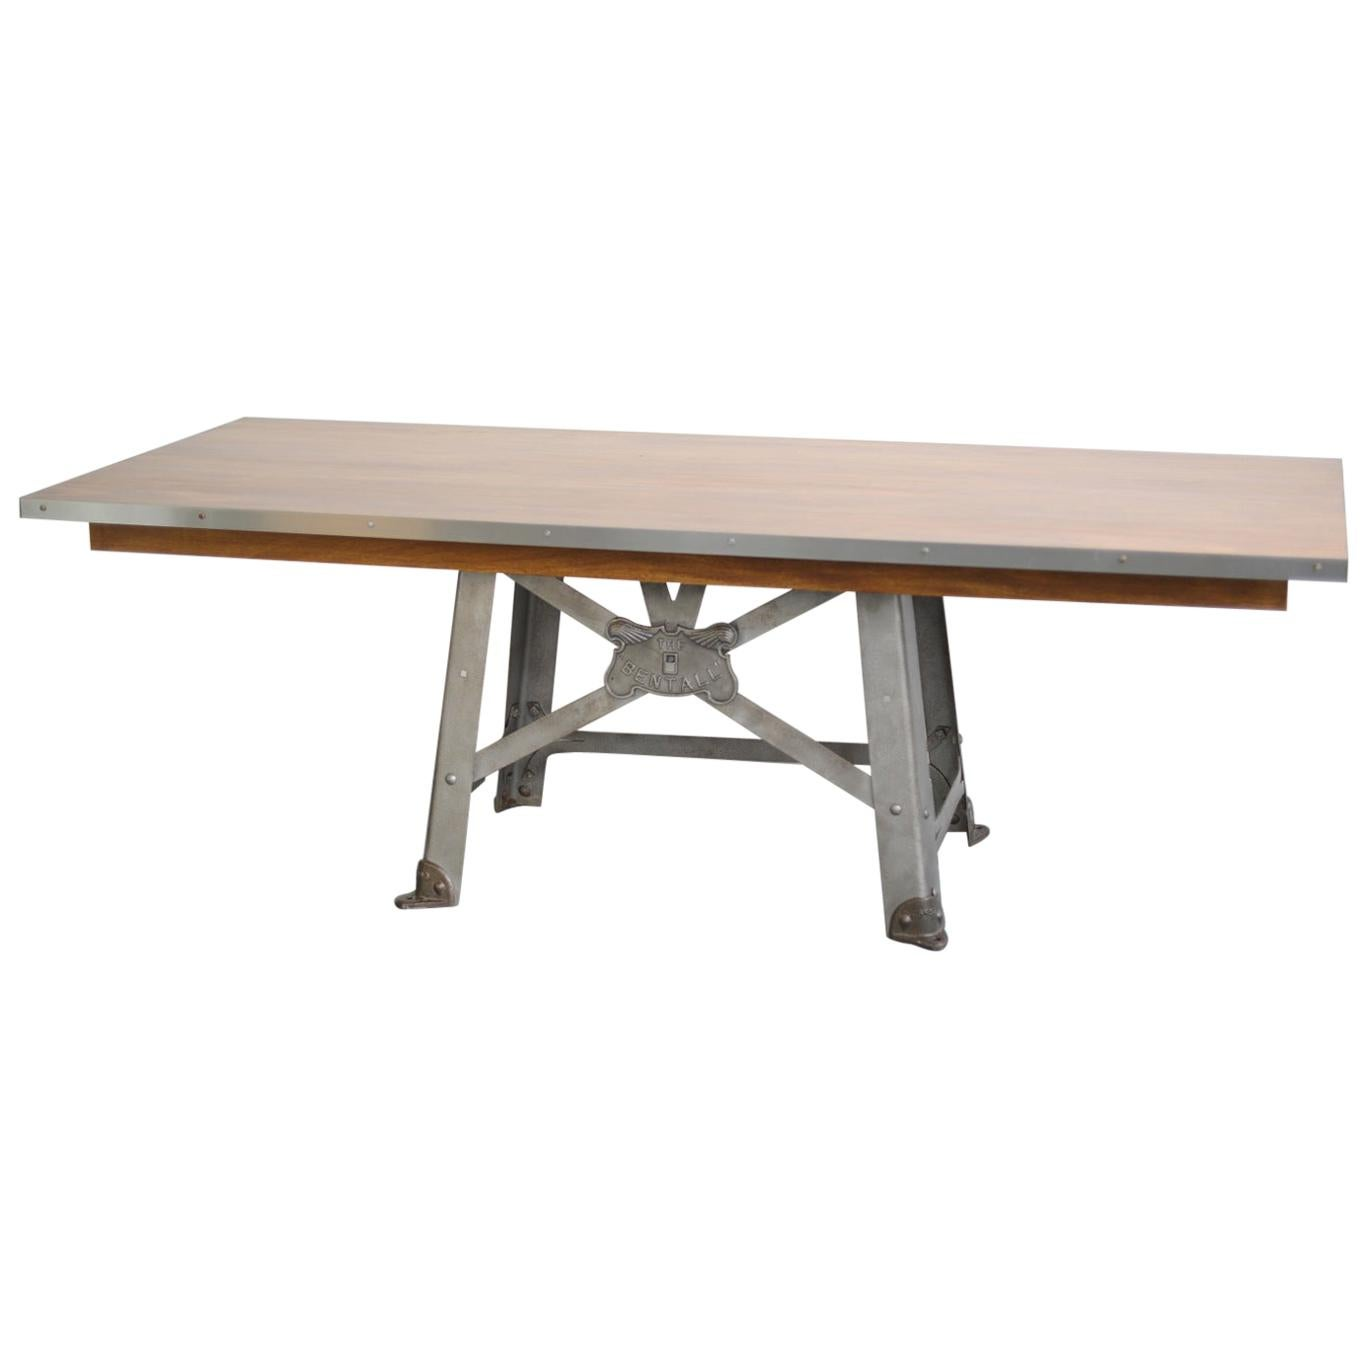 Large English Industrial Table by Benthall, circa 1910